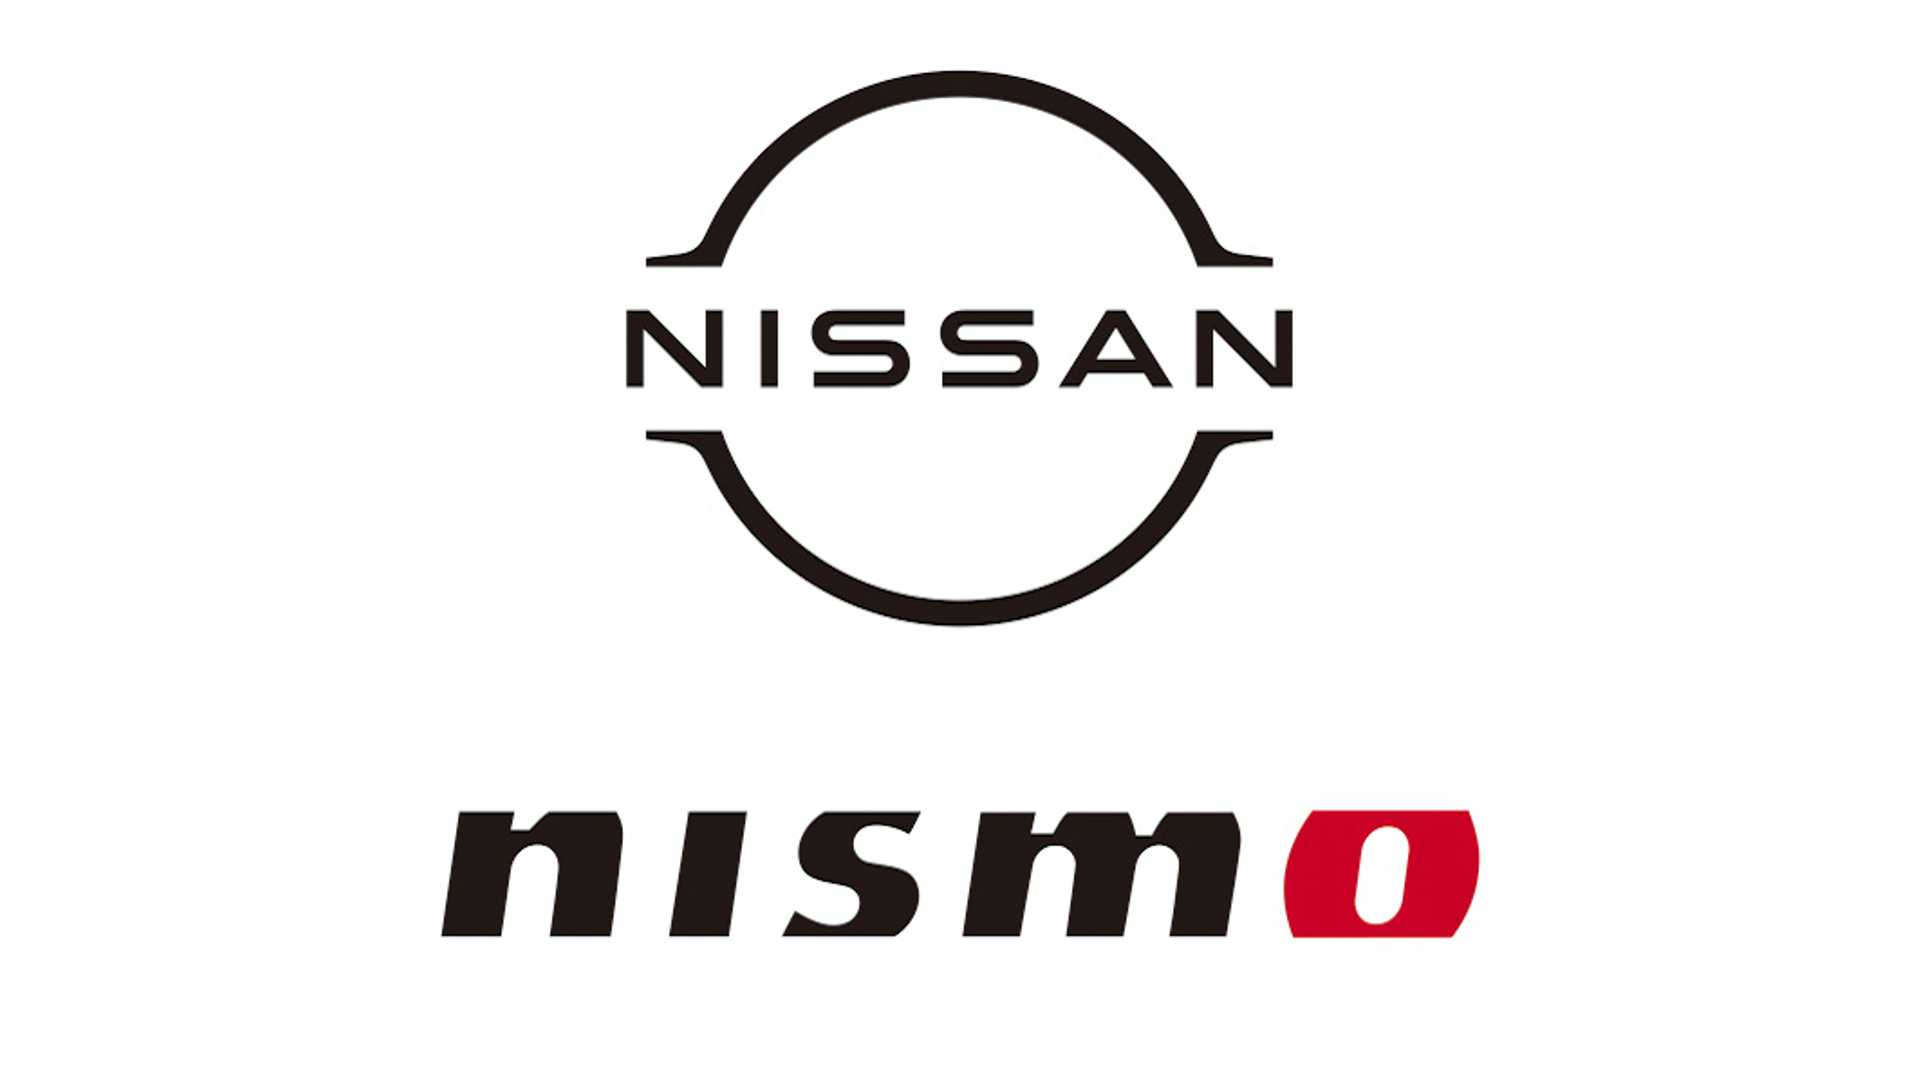 new nissan nismo logos revealed with flatter design new nissan nismo logos revealed with